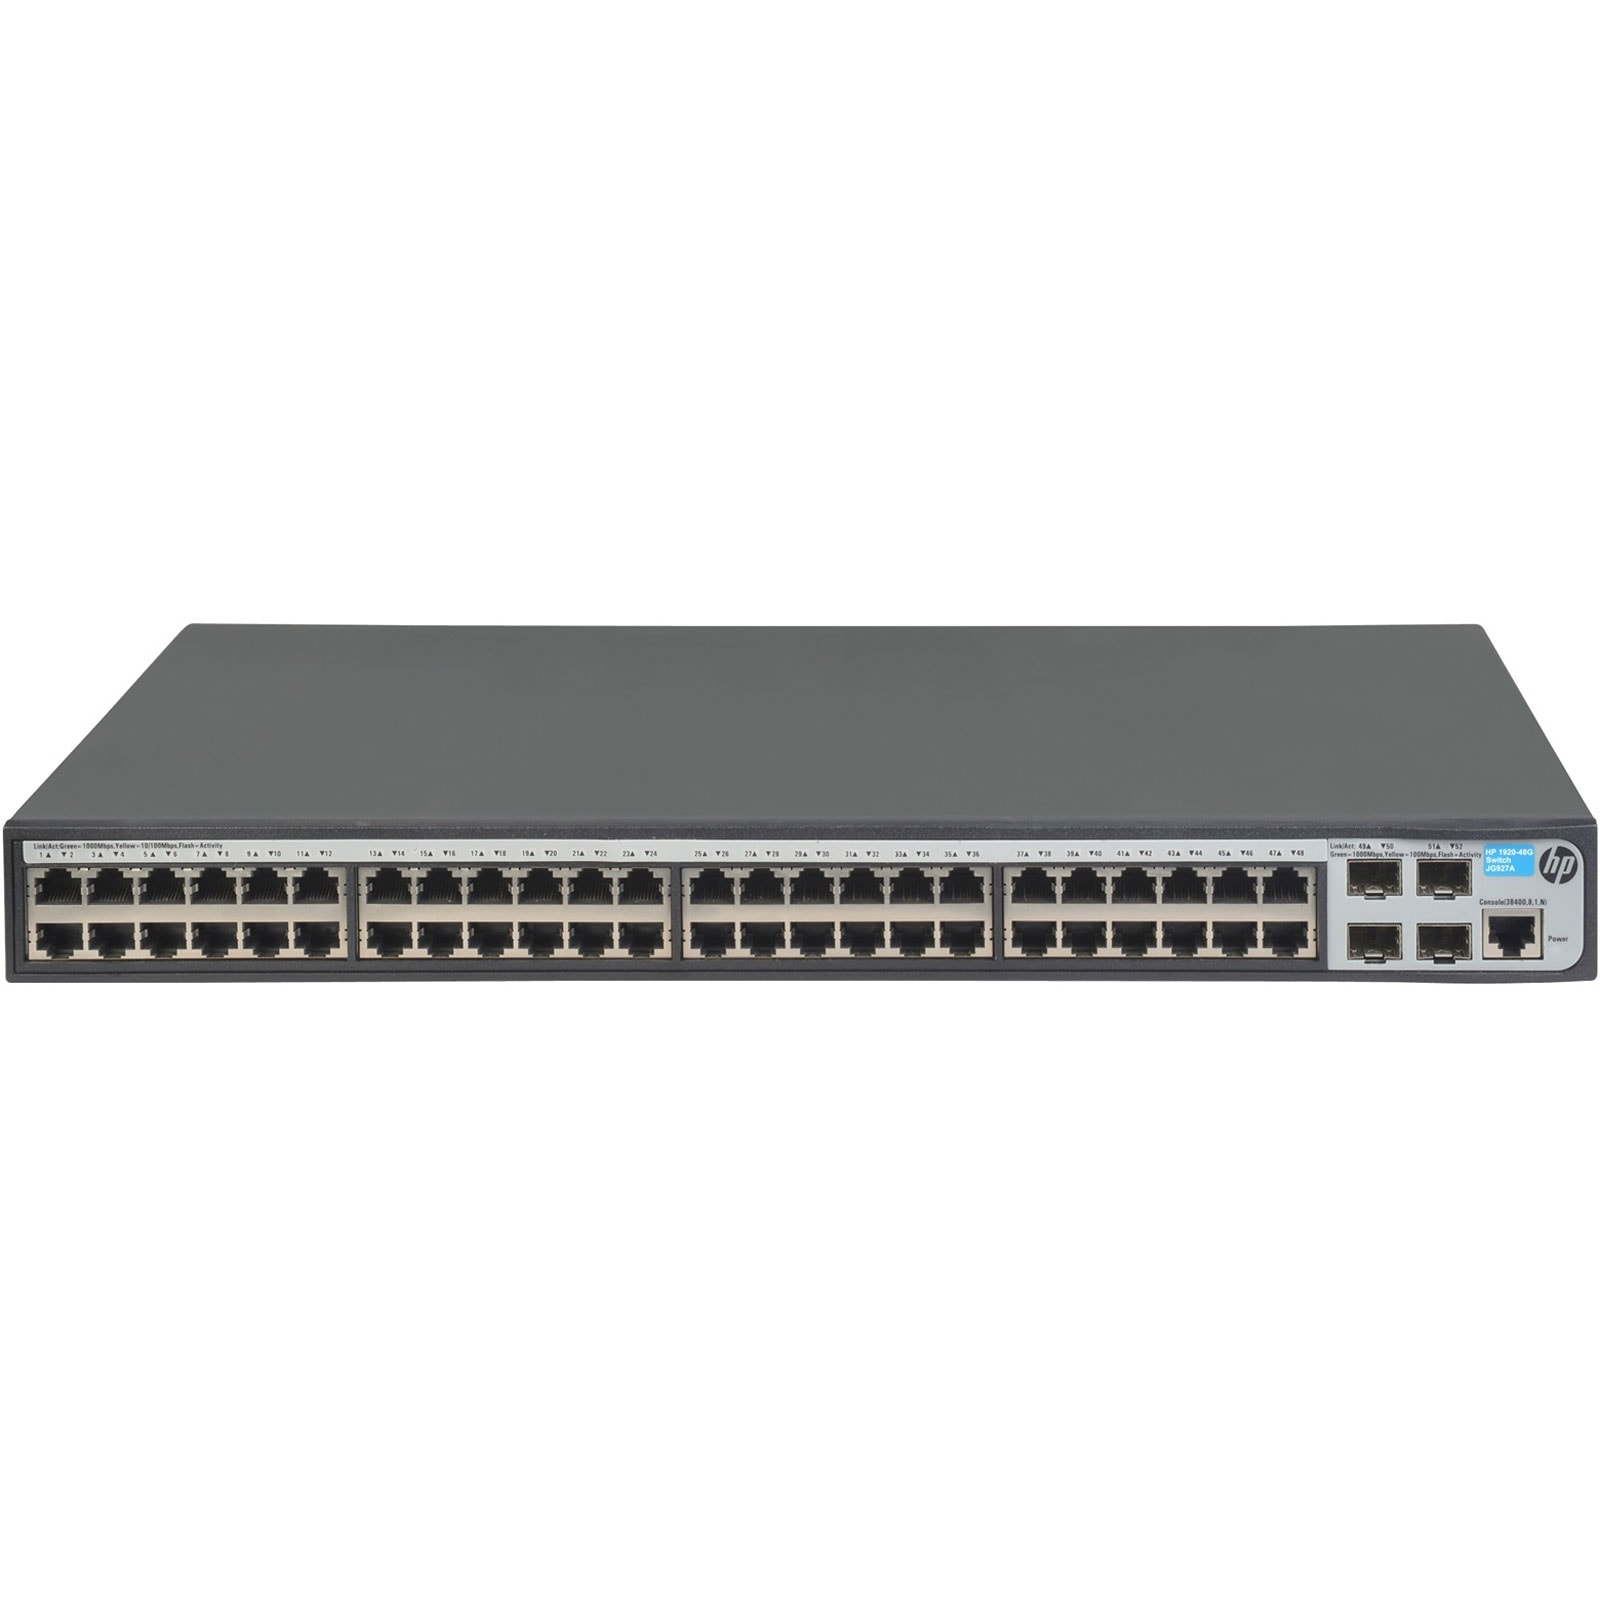 Switch HP 48 ports 10/100/1000 + 4 ports SFP - 1920-48G - 0